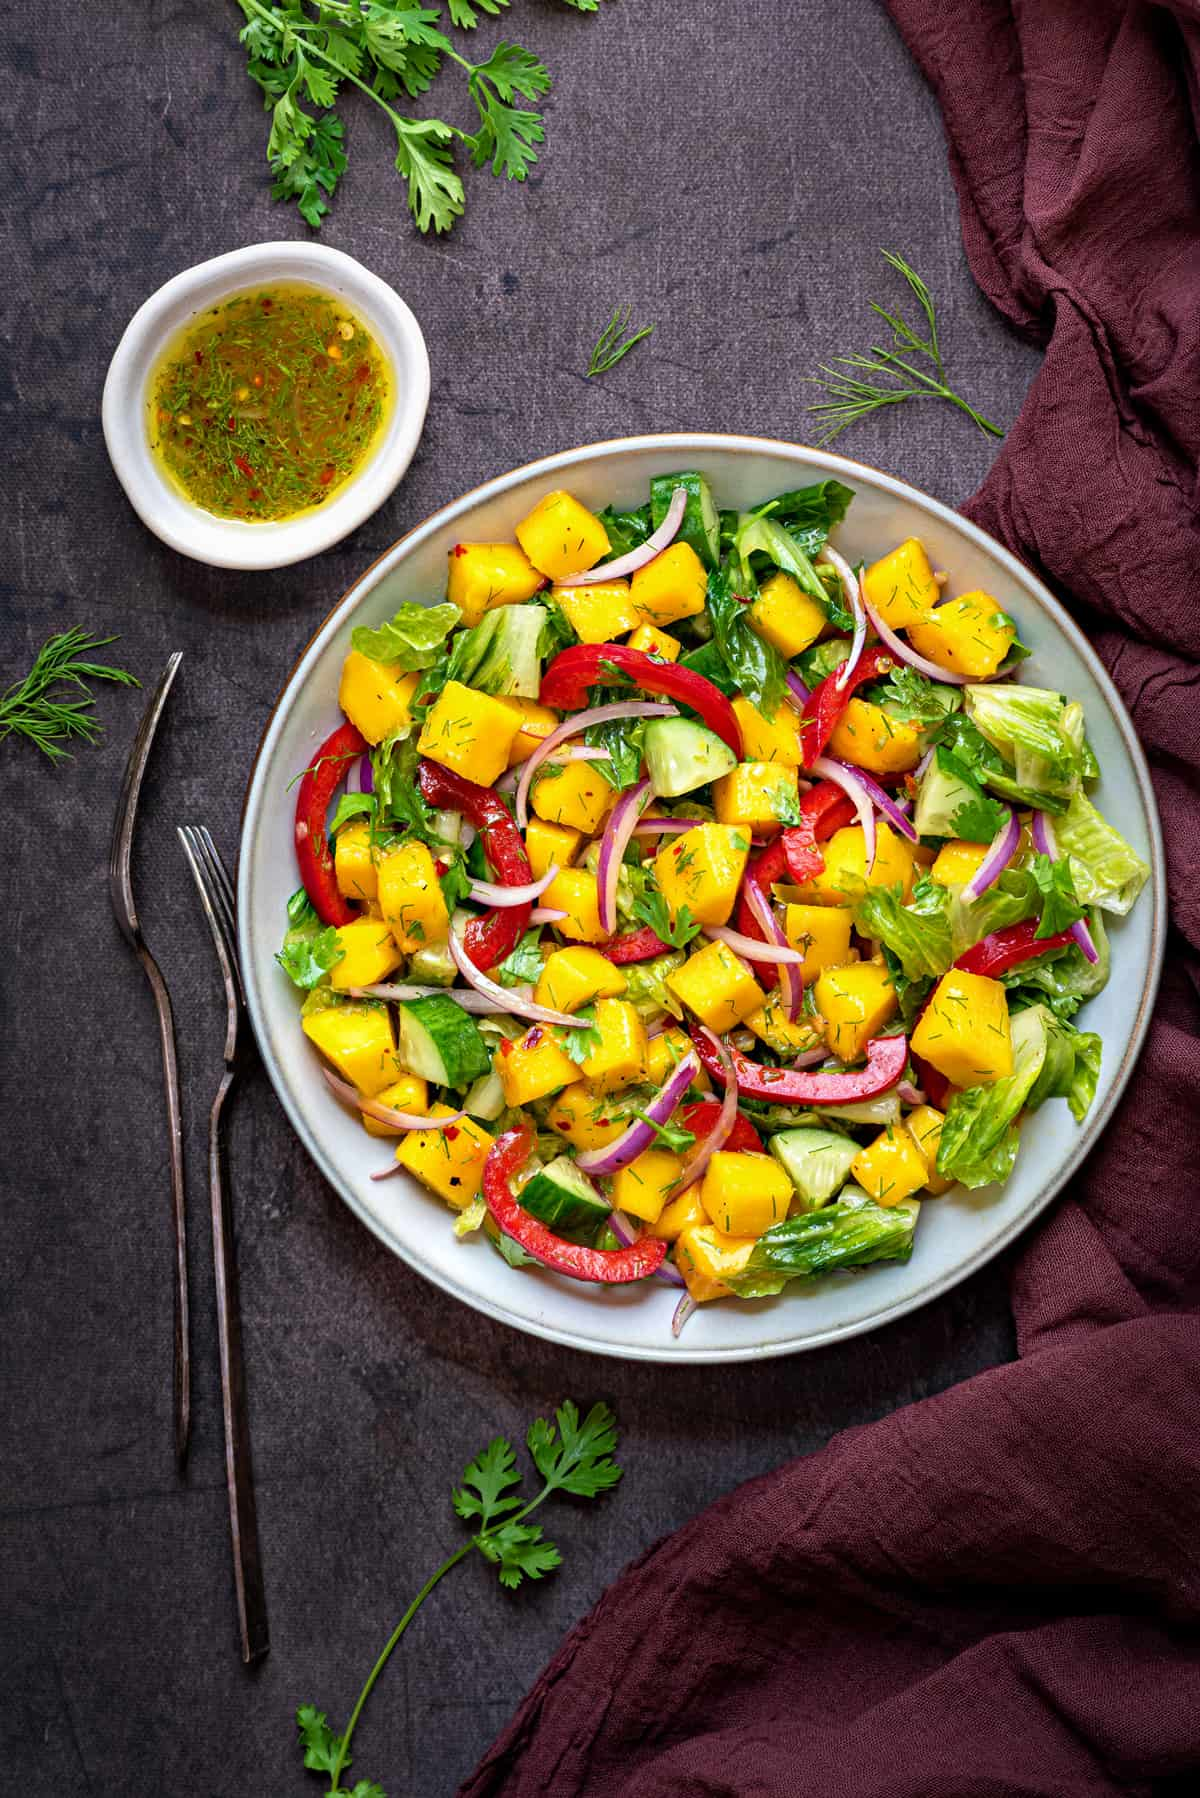 mango salad in a grey bowl with two forks and dressing in bowl kept on side